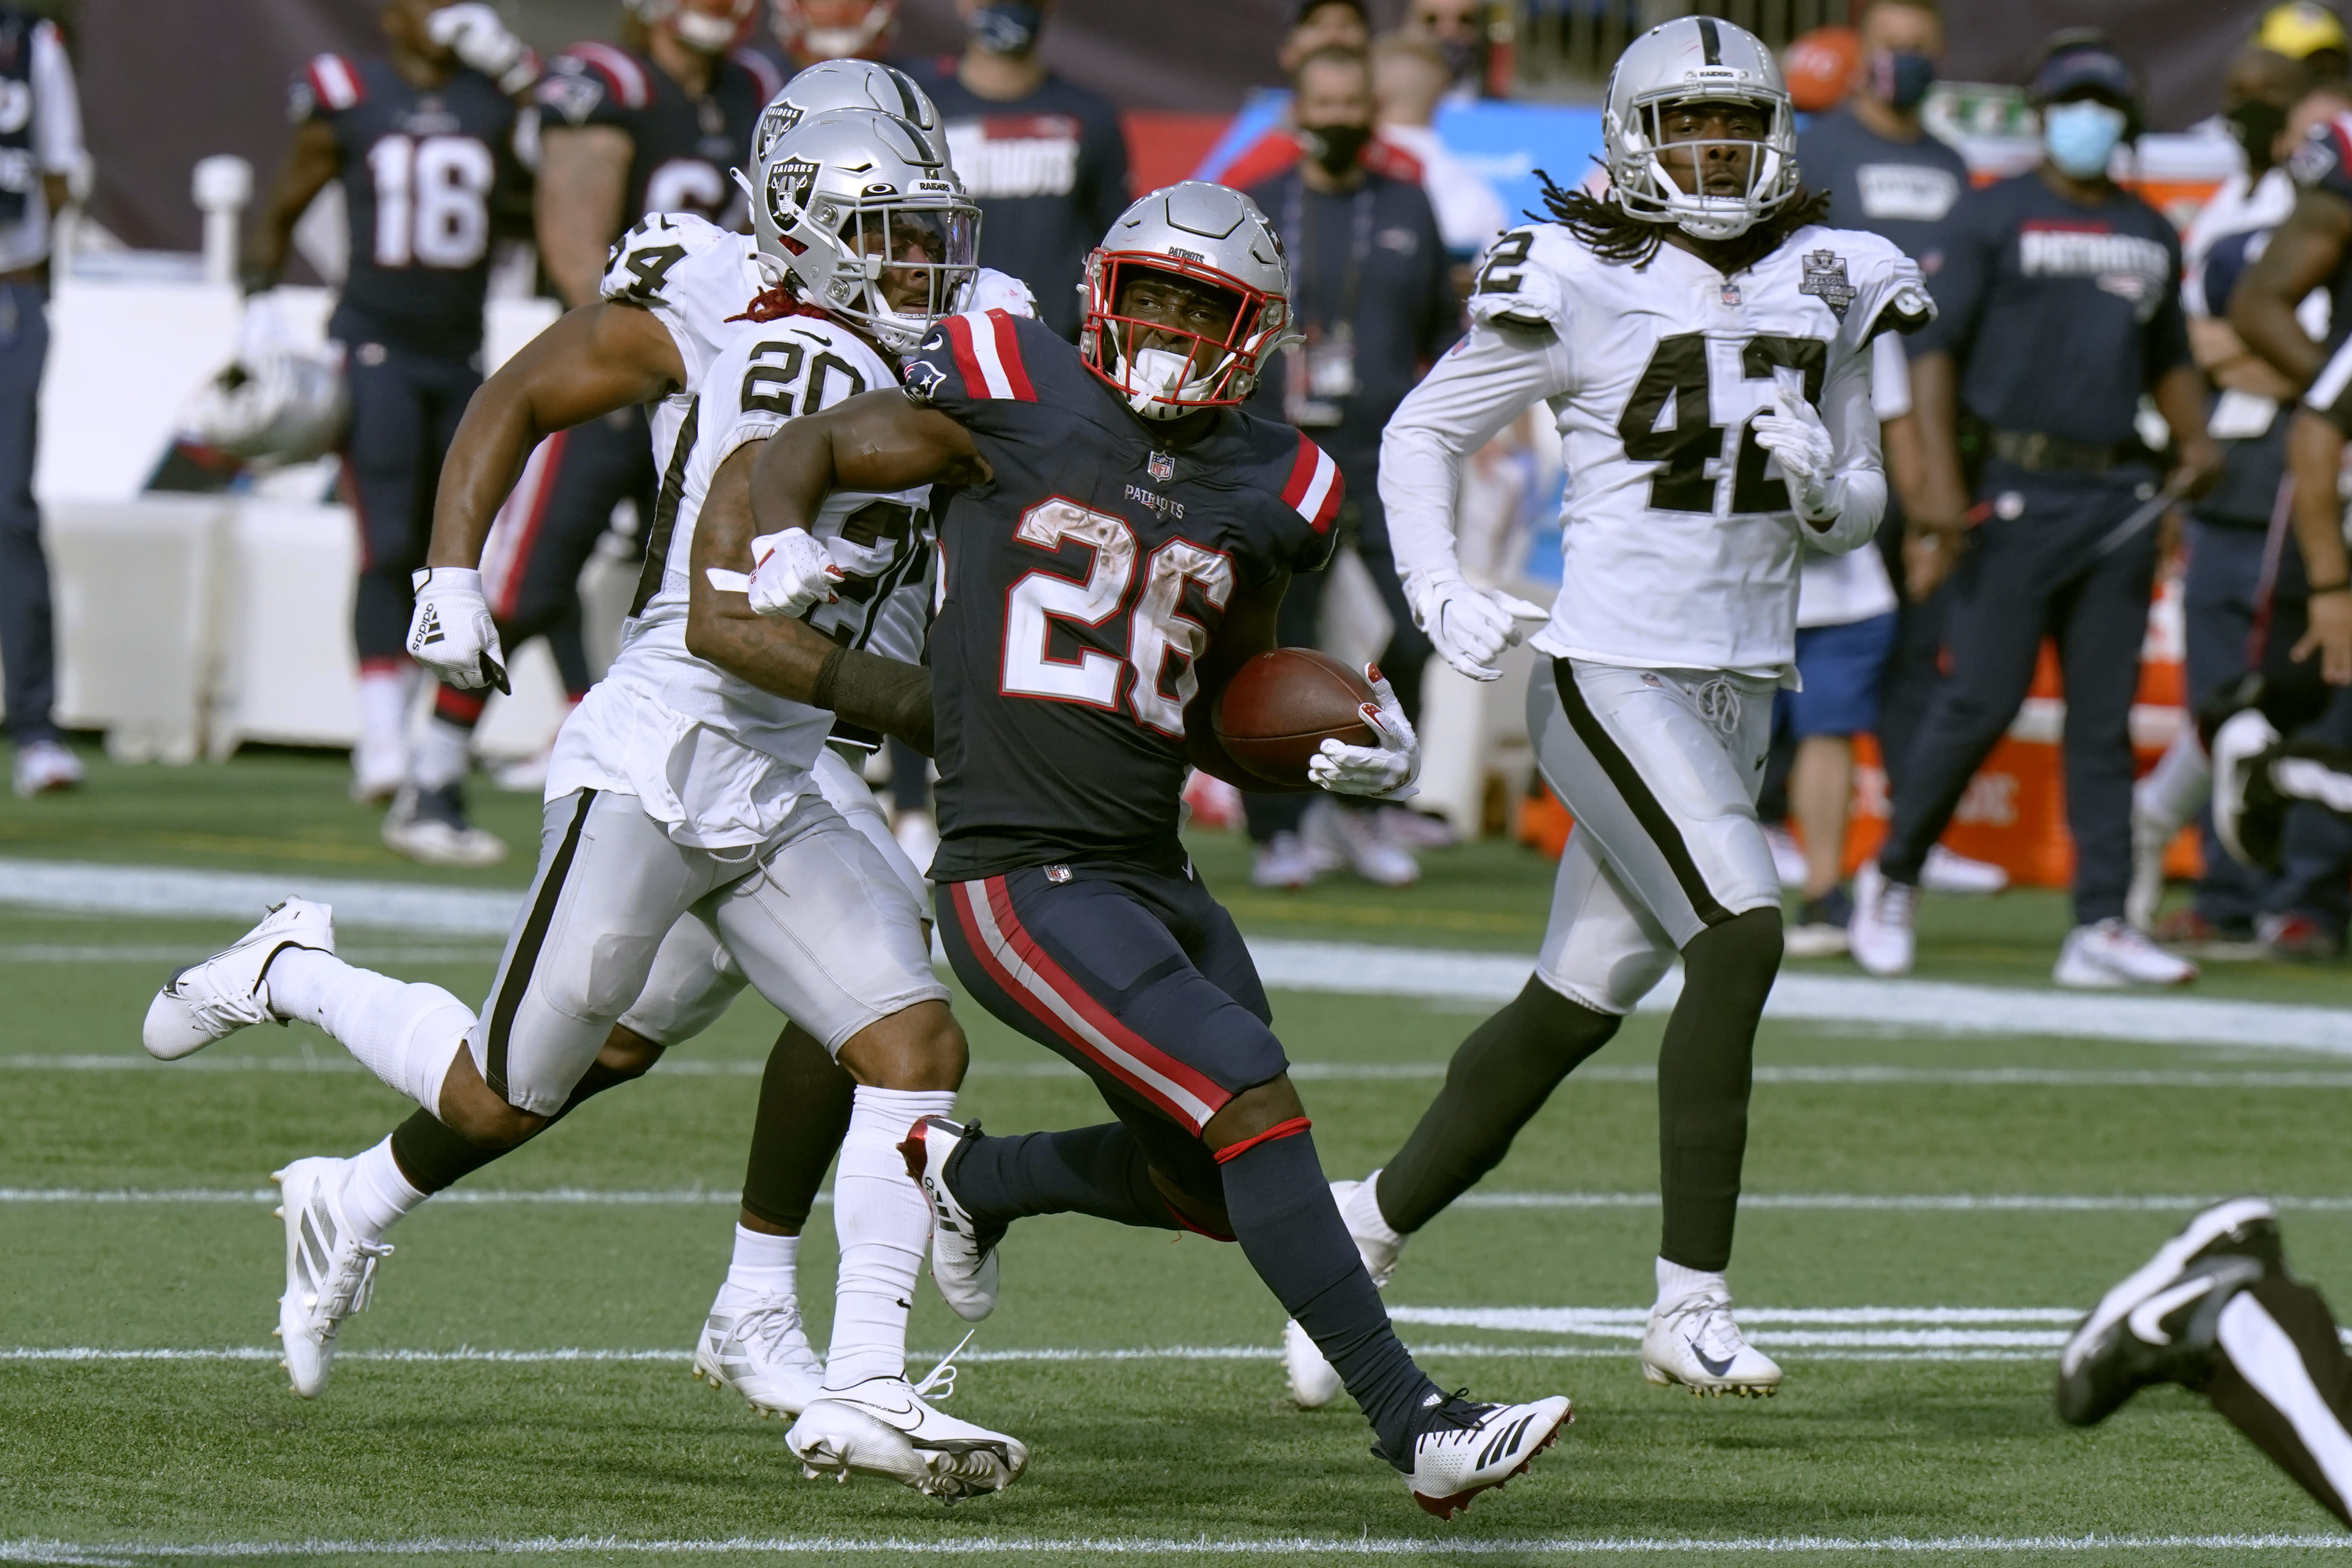 New England Patriots running back Sony Michel (26) gains yardage against the Las Vegas Raiders in the second half of an NFL football game, Sunday, Sept. 27, 2020, in Foxborough, Mass. (AP Photo/Steven Senne)